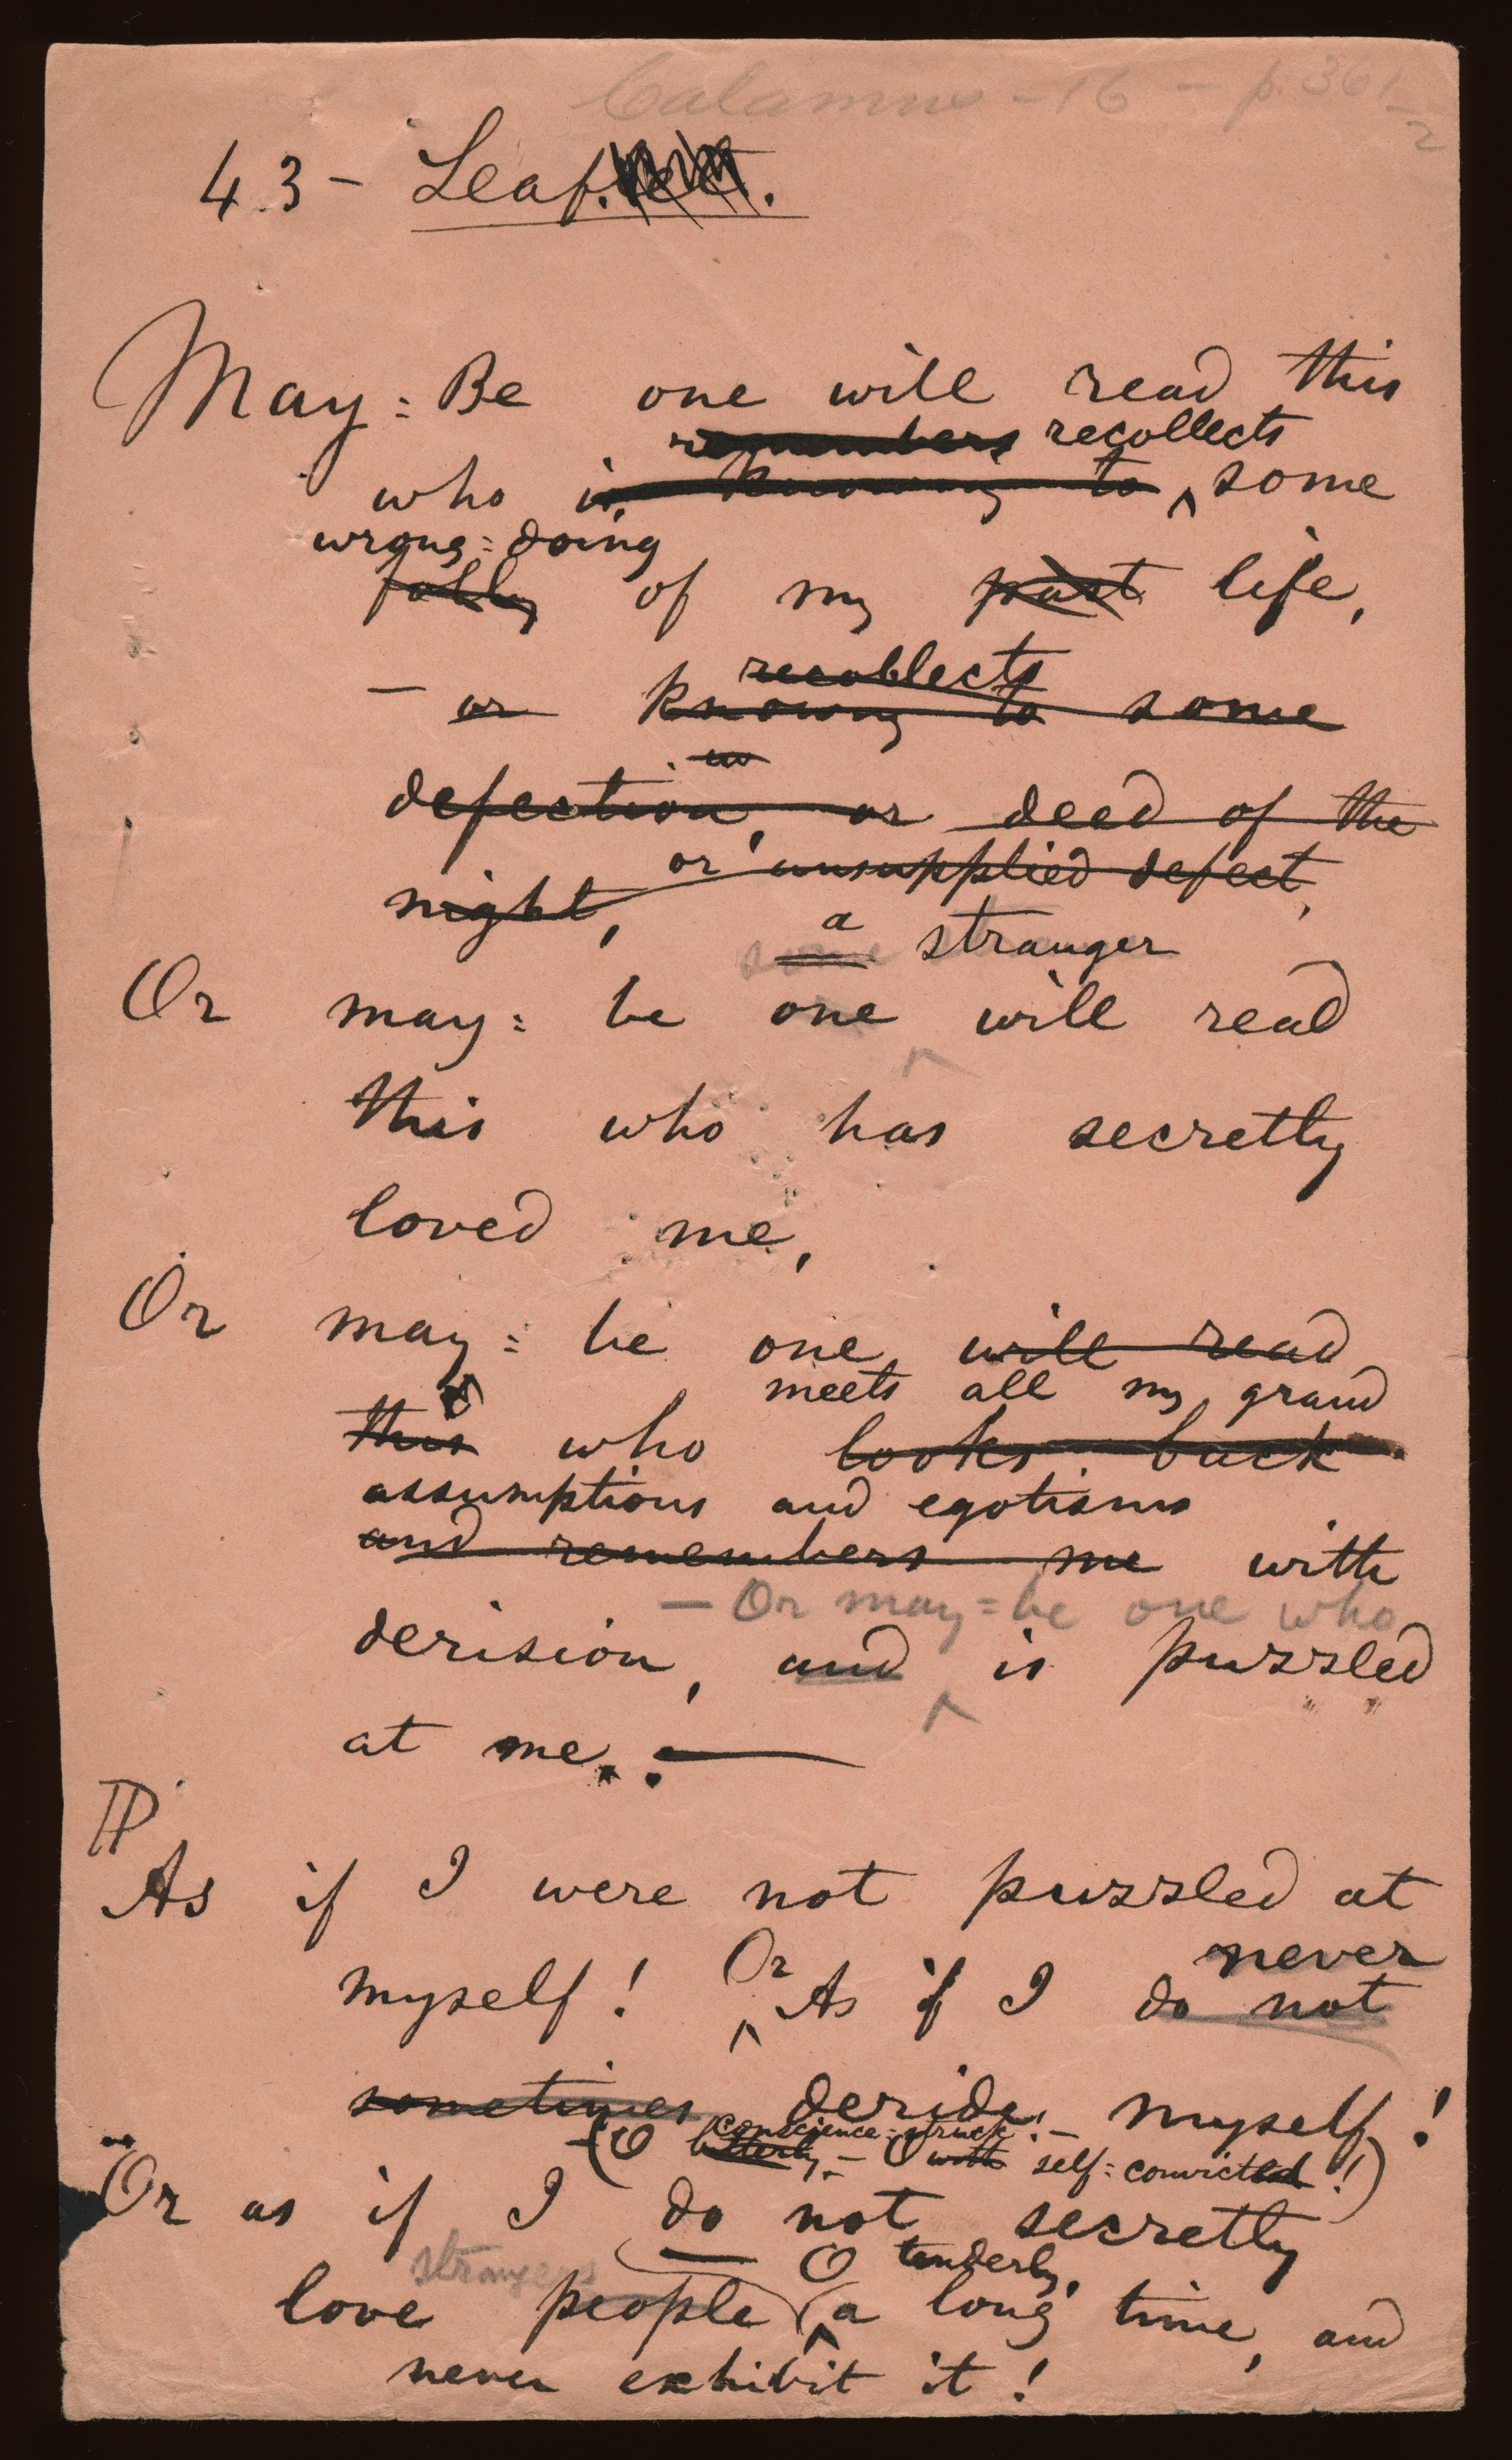 """Content: The original title was """"Leaflet."""" On the second page Whitman  added, in a combination of normal and blue pencil, the number 43 (1/2)."""